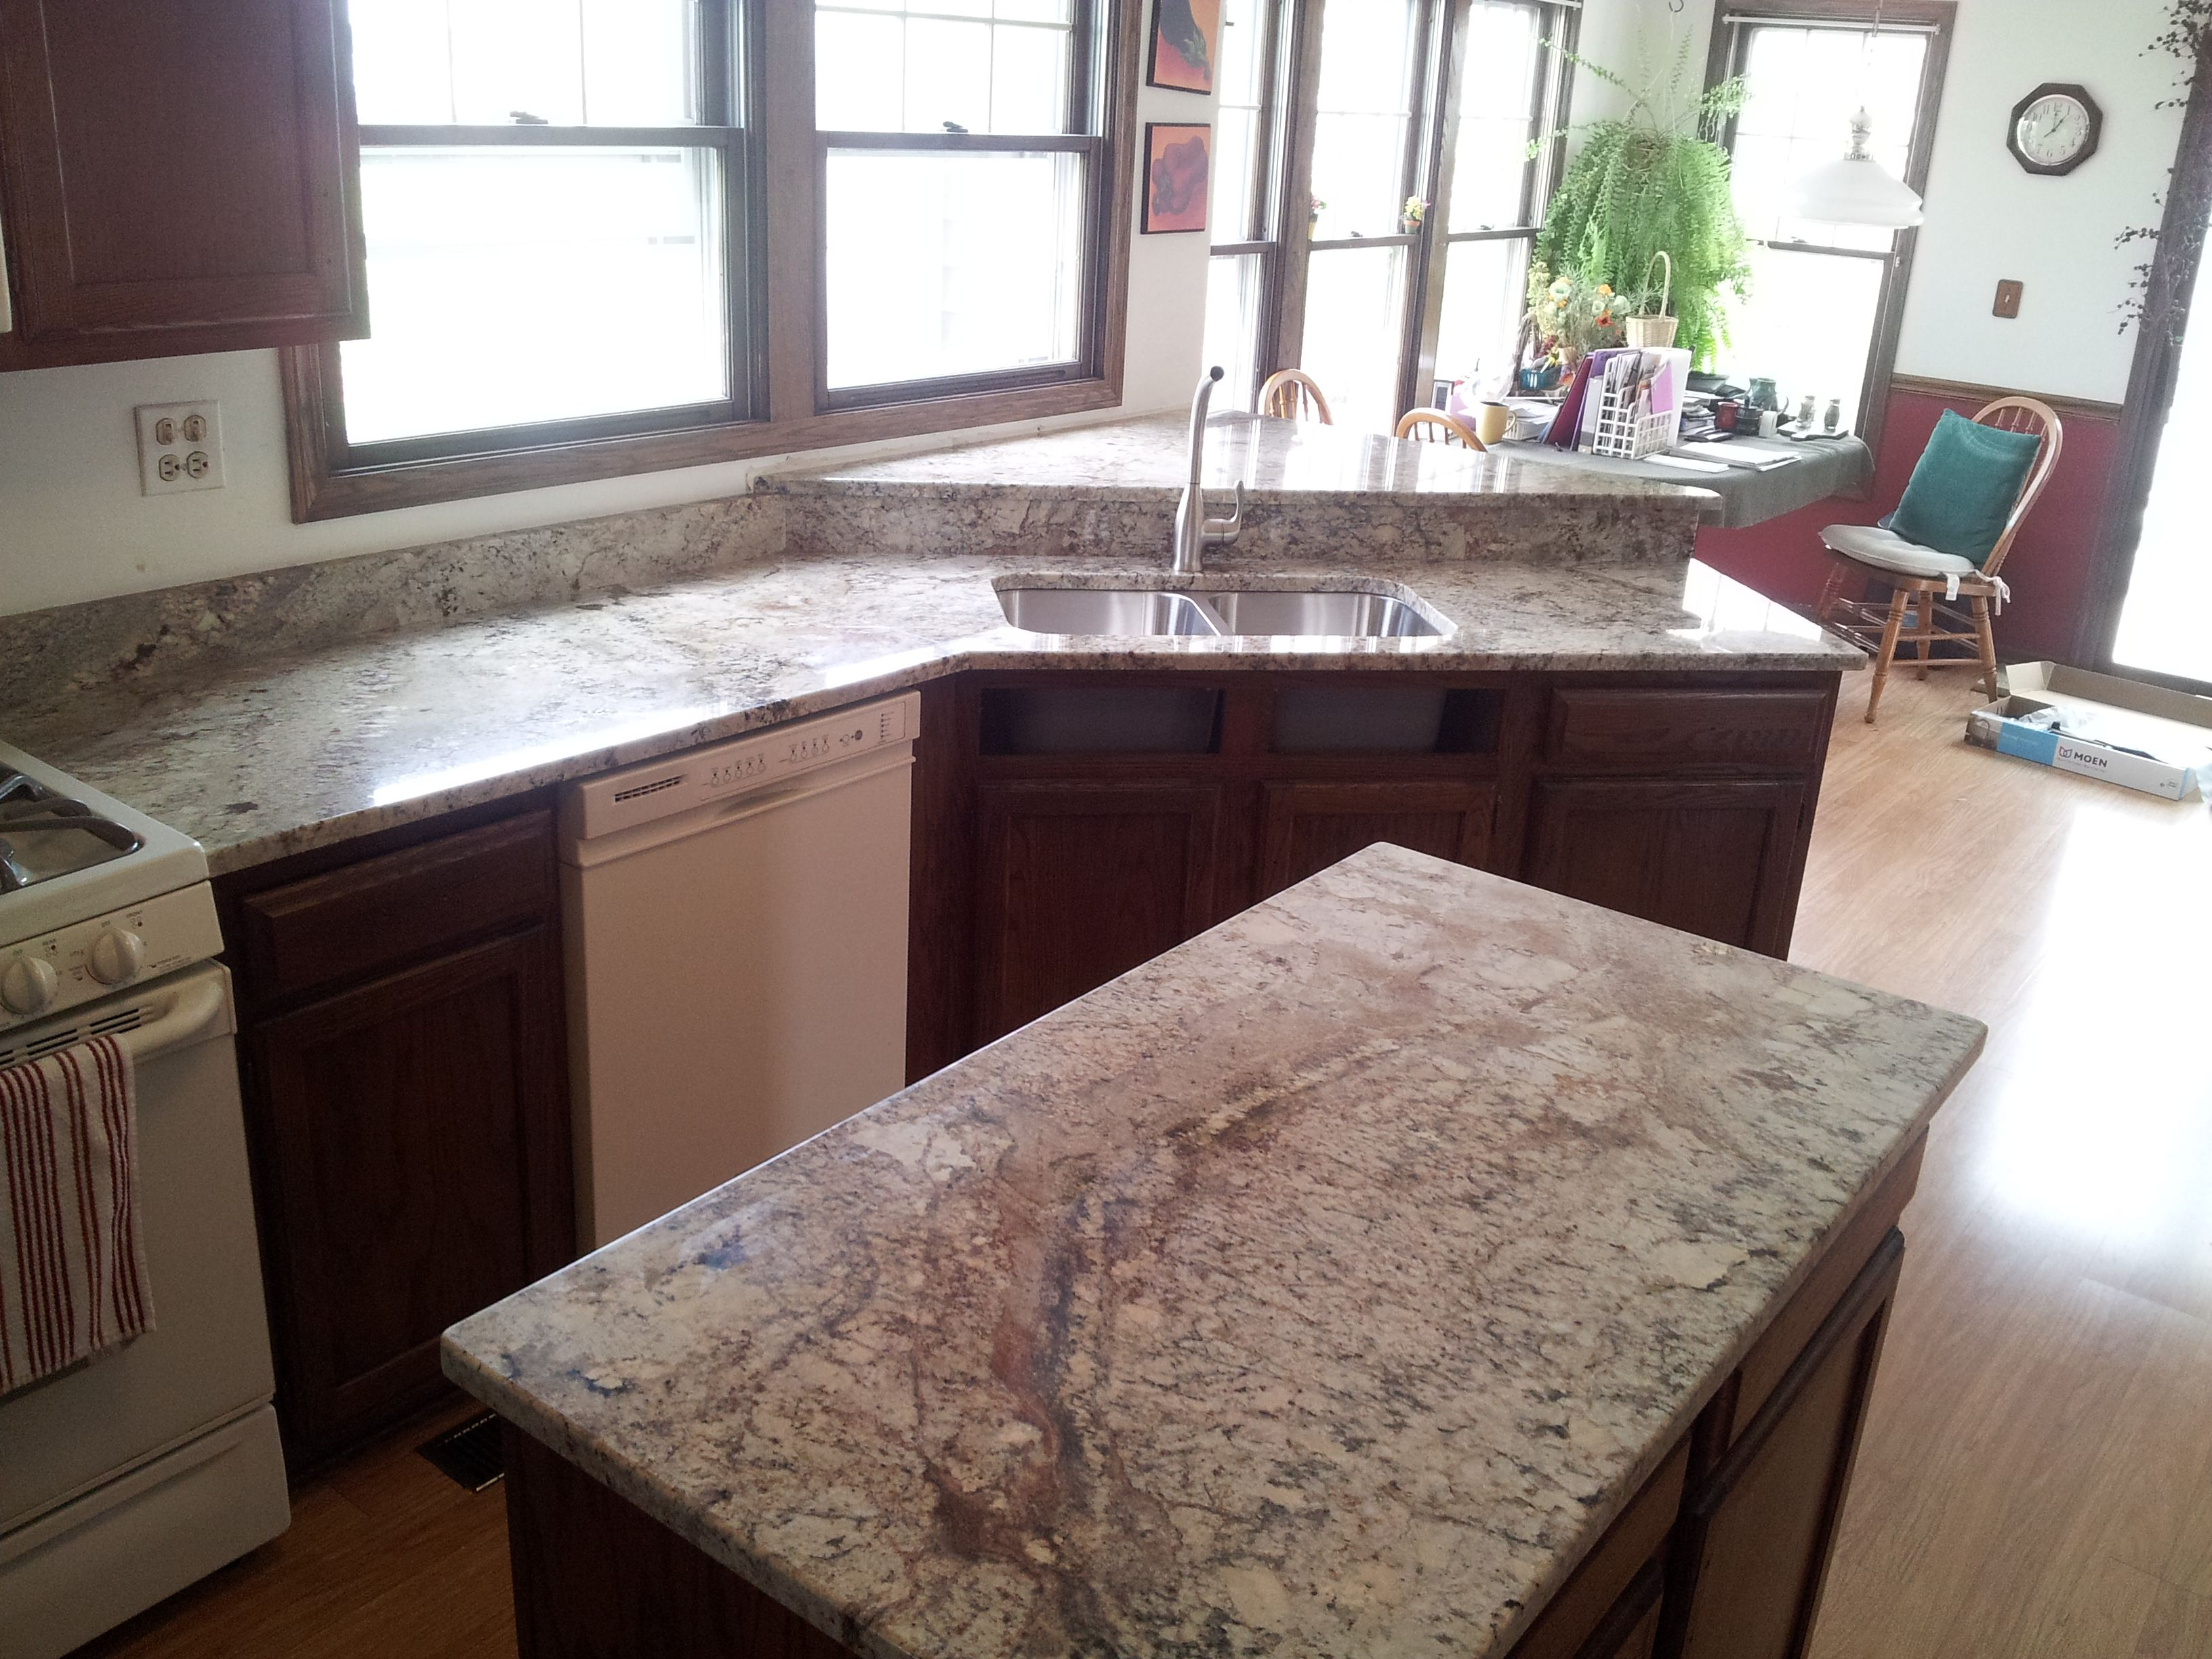 Art Granite Countertops Inc 1020 Lunt Ave Unit F Schaumburg Il 60193 Tel 847 923 1323 Granite Tile Sienna Bordeaux Granite Kitchen And Bath Remodeling